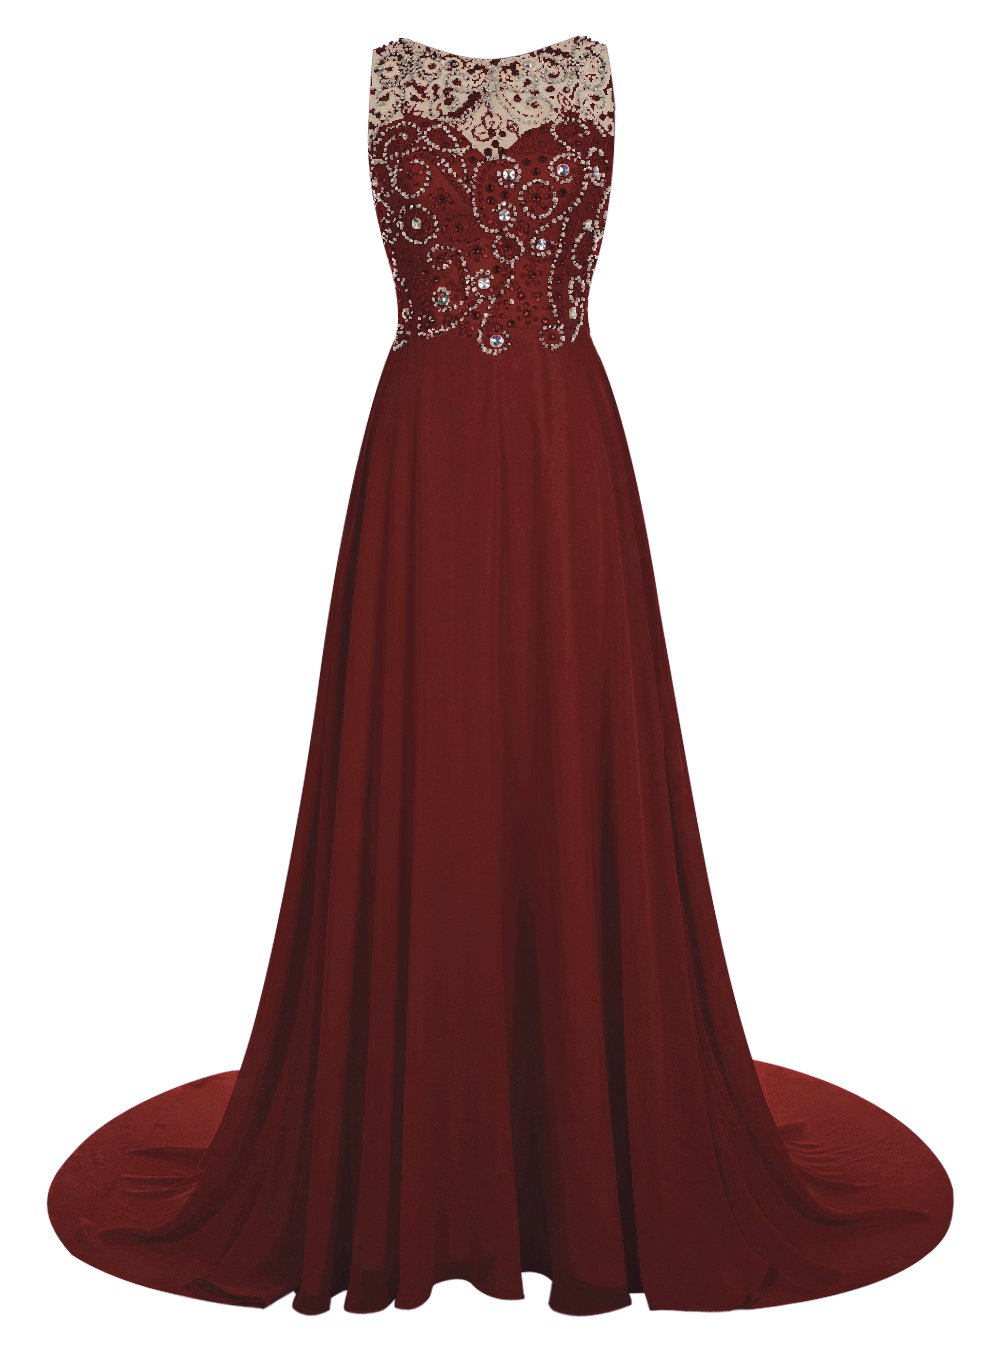 Wedtrend Women's Long Prom Dress With Shining Rhinestones and Train 11067Burgundy 8